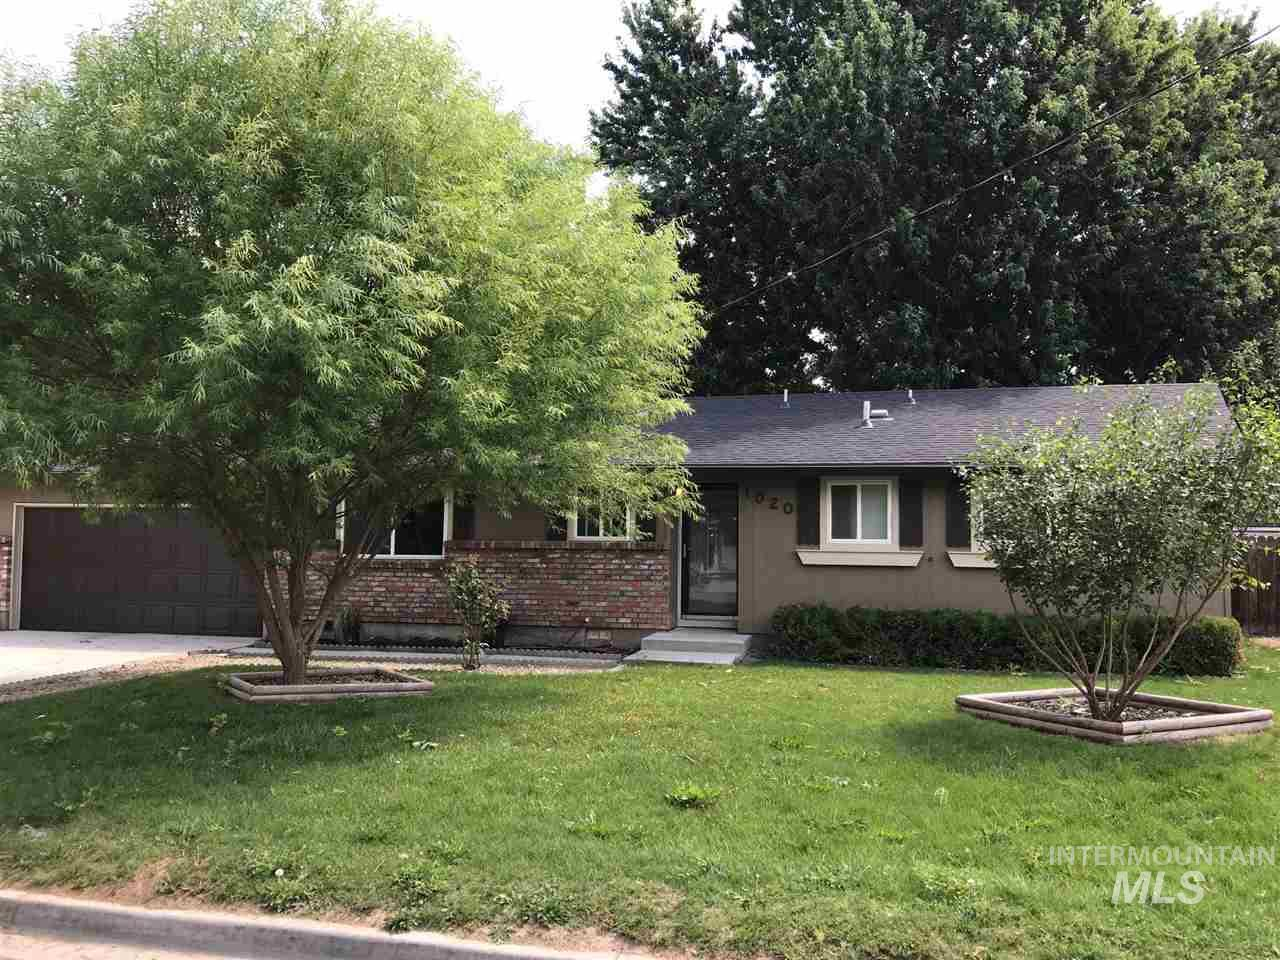 Fresh and clean remodel. New roof, exterior painting, landscaping, mature trees with an awesome back yard. Enjoy the shade trees and large rear patio. Newer windows and furnaces. New carpet and paint throughout. New flooring throughout. Brand new stainless steel kitchen appliances. A must see home!